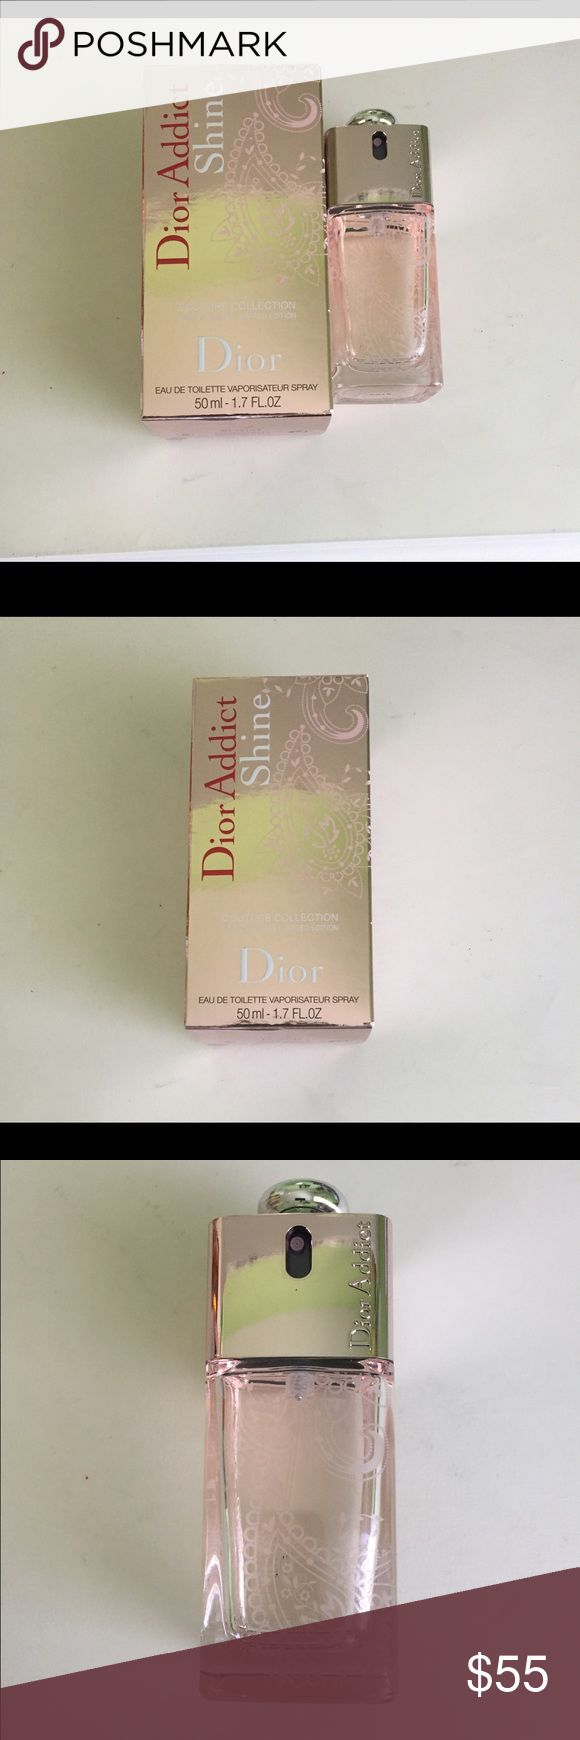 Dior Addict Shine Perfume 1.7oz Brand new Addict Shine eau de toilette by Christian Dior for women. Comes in a 1.7 fl oz glass container that looks beautiful on a vanity. Selling this one as I already have one. Original price at Nordstrom is $80! Most offers accepted. Christian Dior Makeup